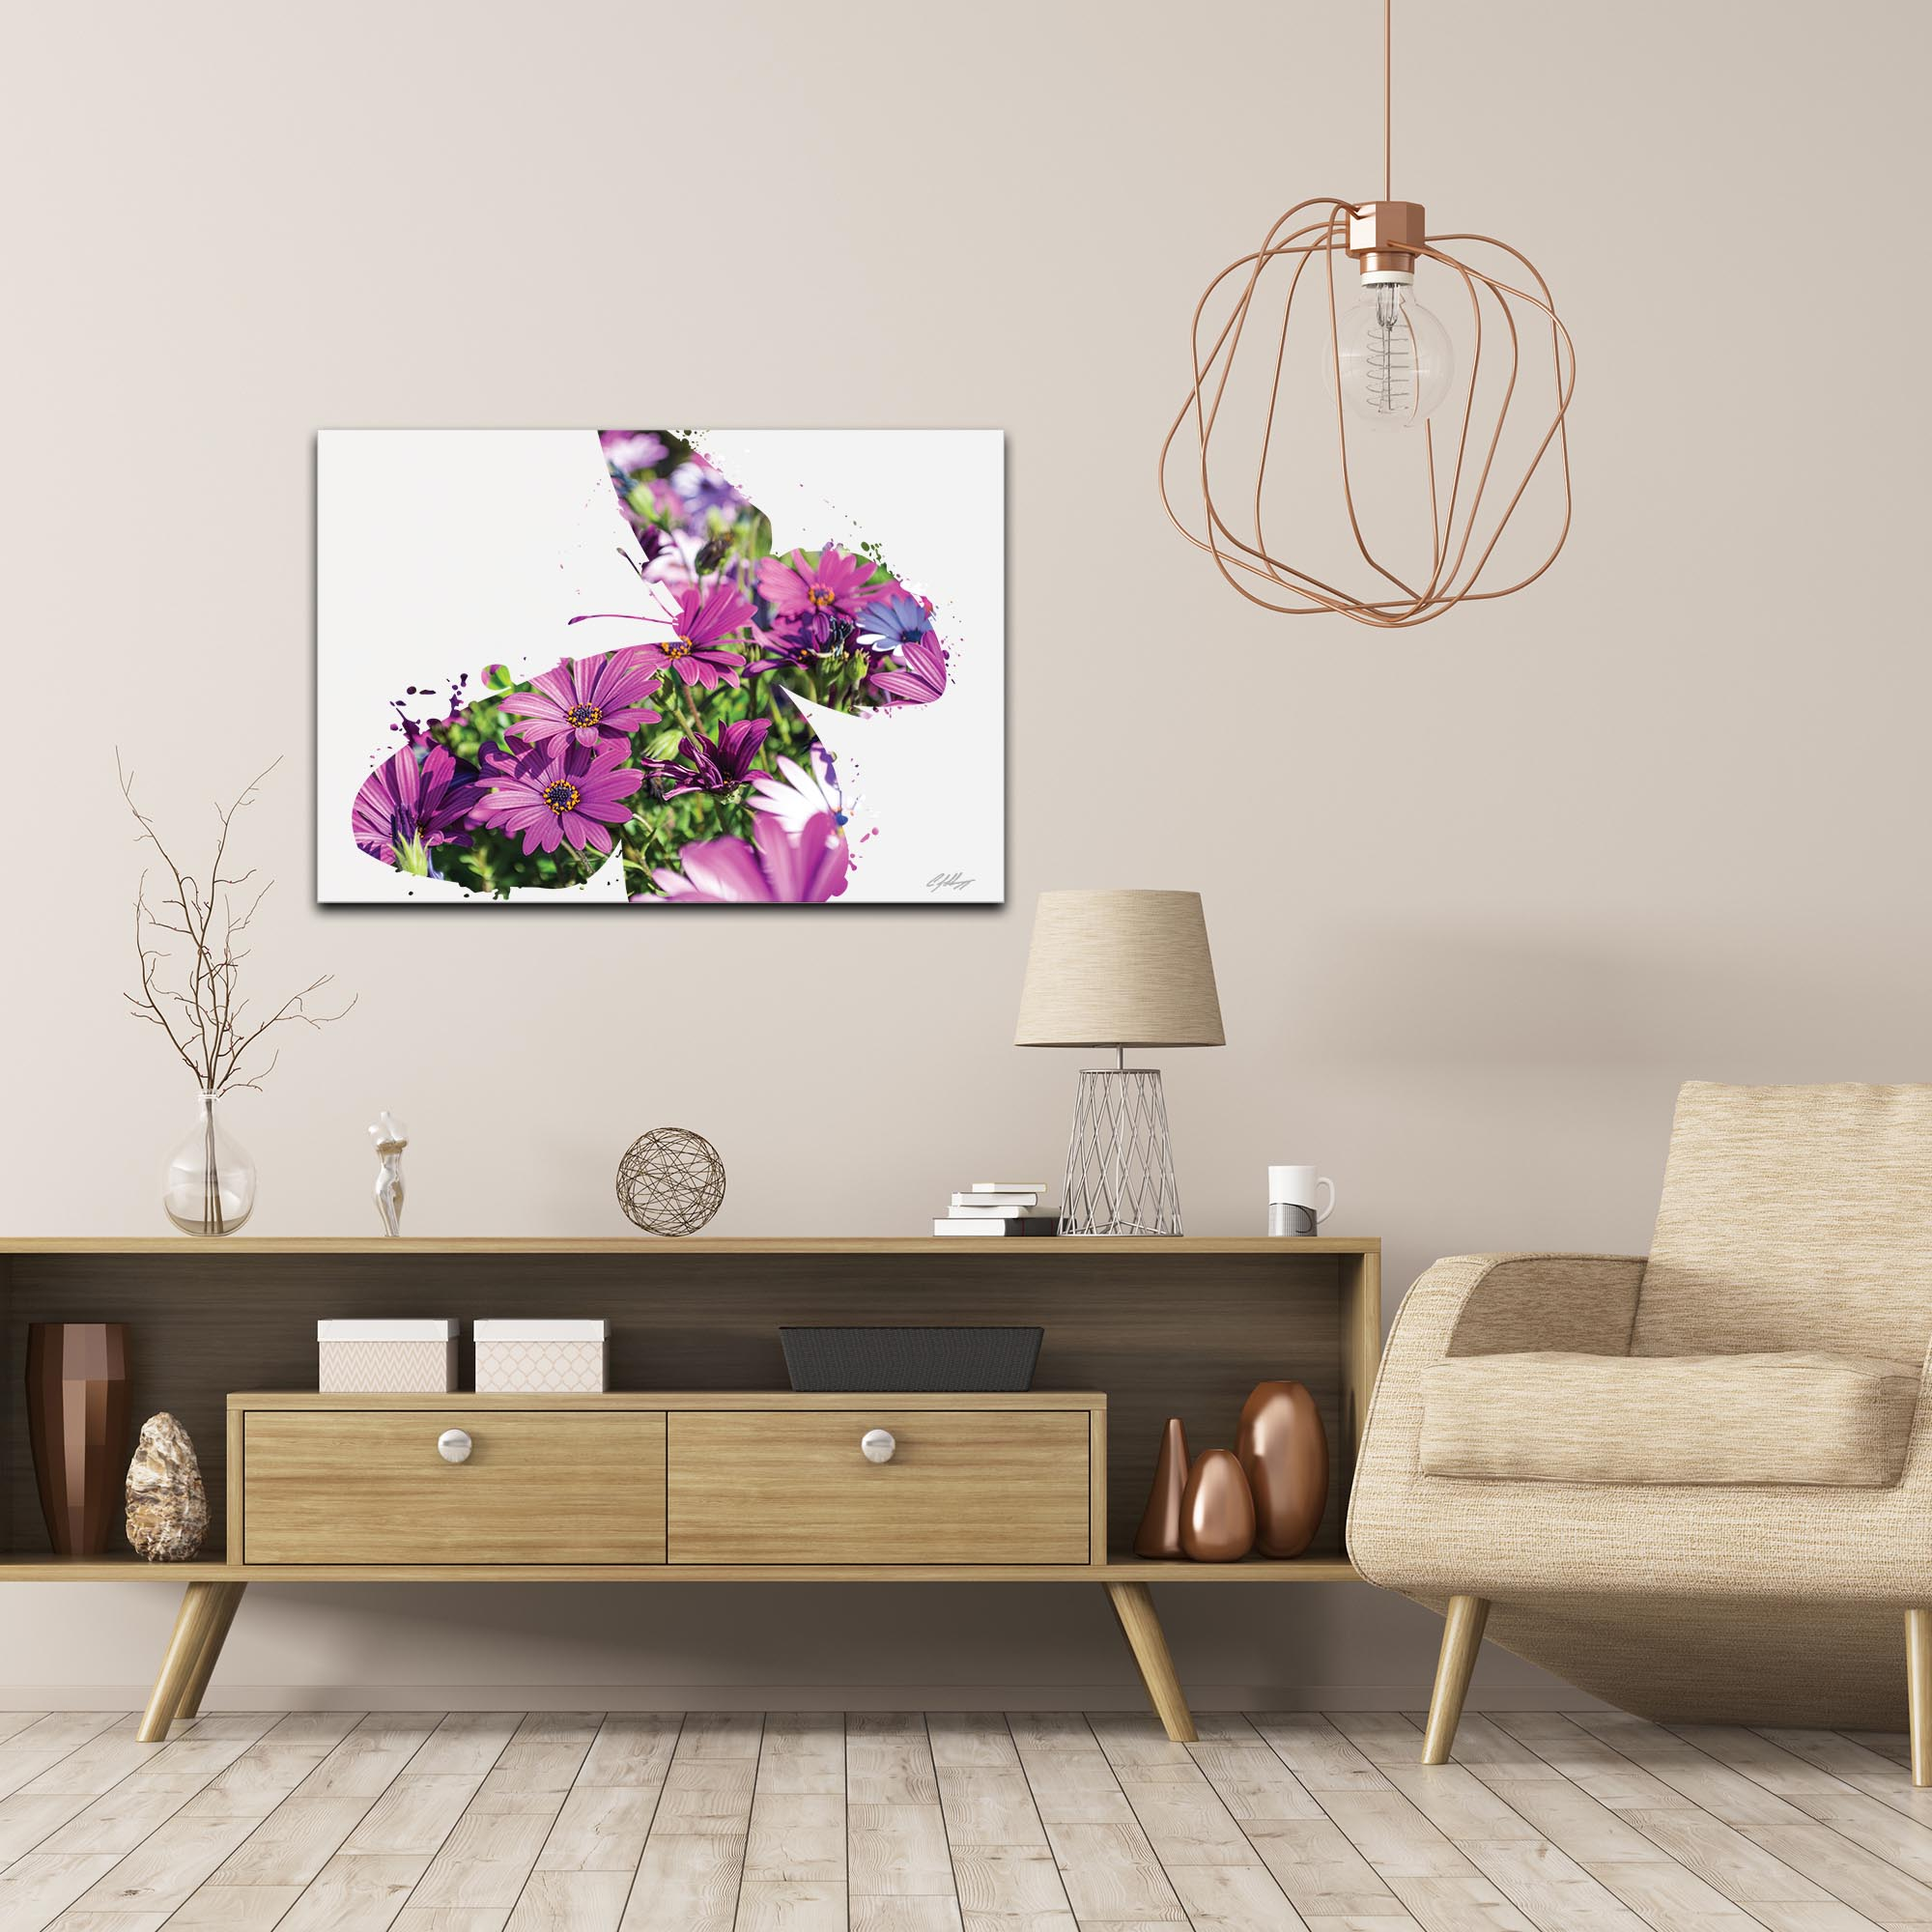 Butterfly Flowers by Adam Schwoeppe Animal Silhouette on White Metal - Lifestyle View